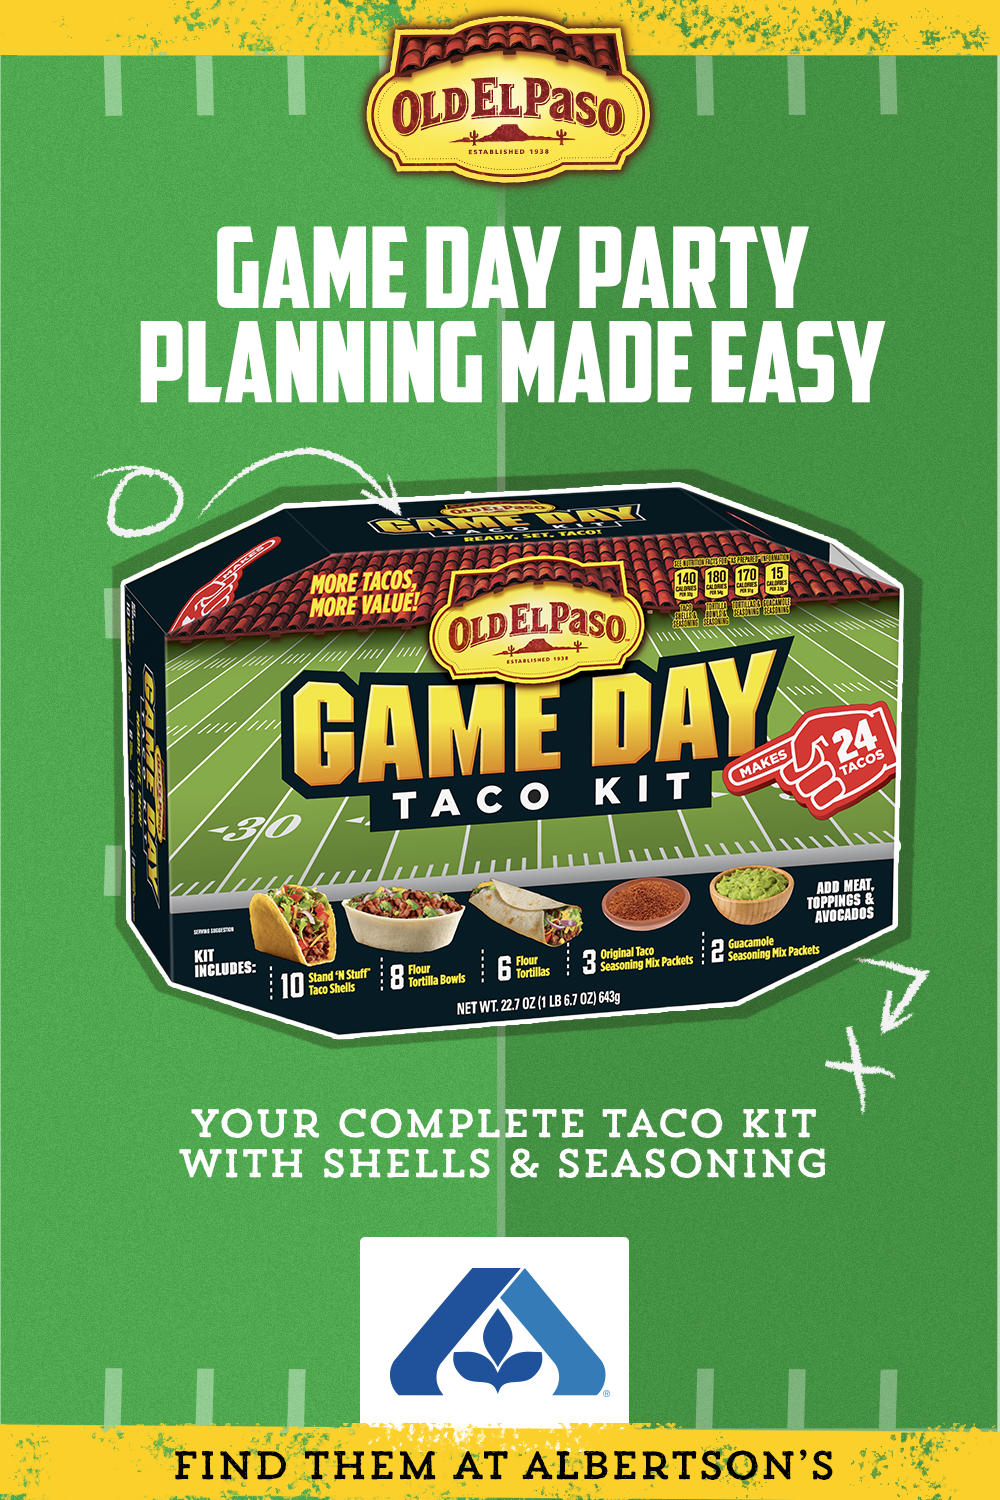 Make Game Day Planning Simple With A Game Day Taco Kit From Old El Paso Complete With Taco Shells Tortilla Bowls Taco Kit Taco Stuffed Shells Tortilla Bowls